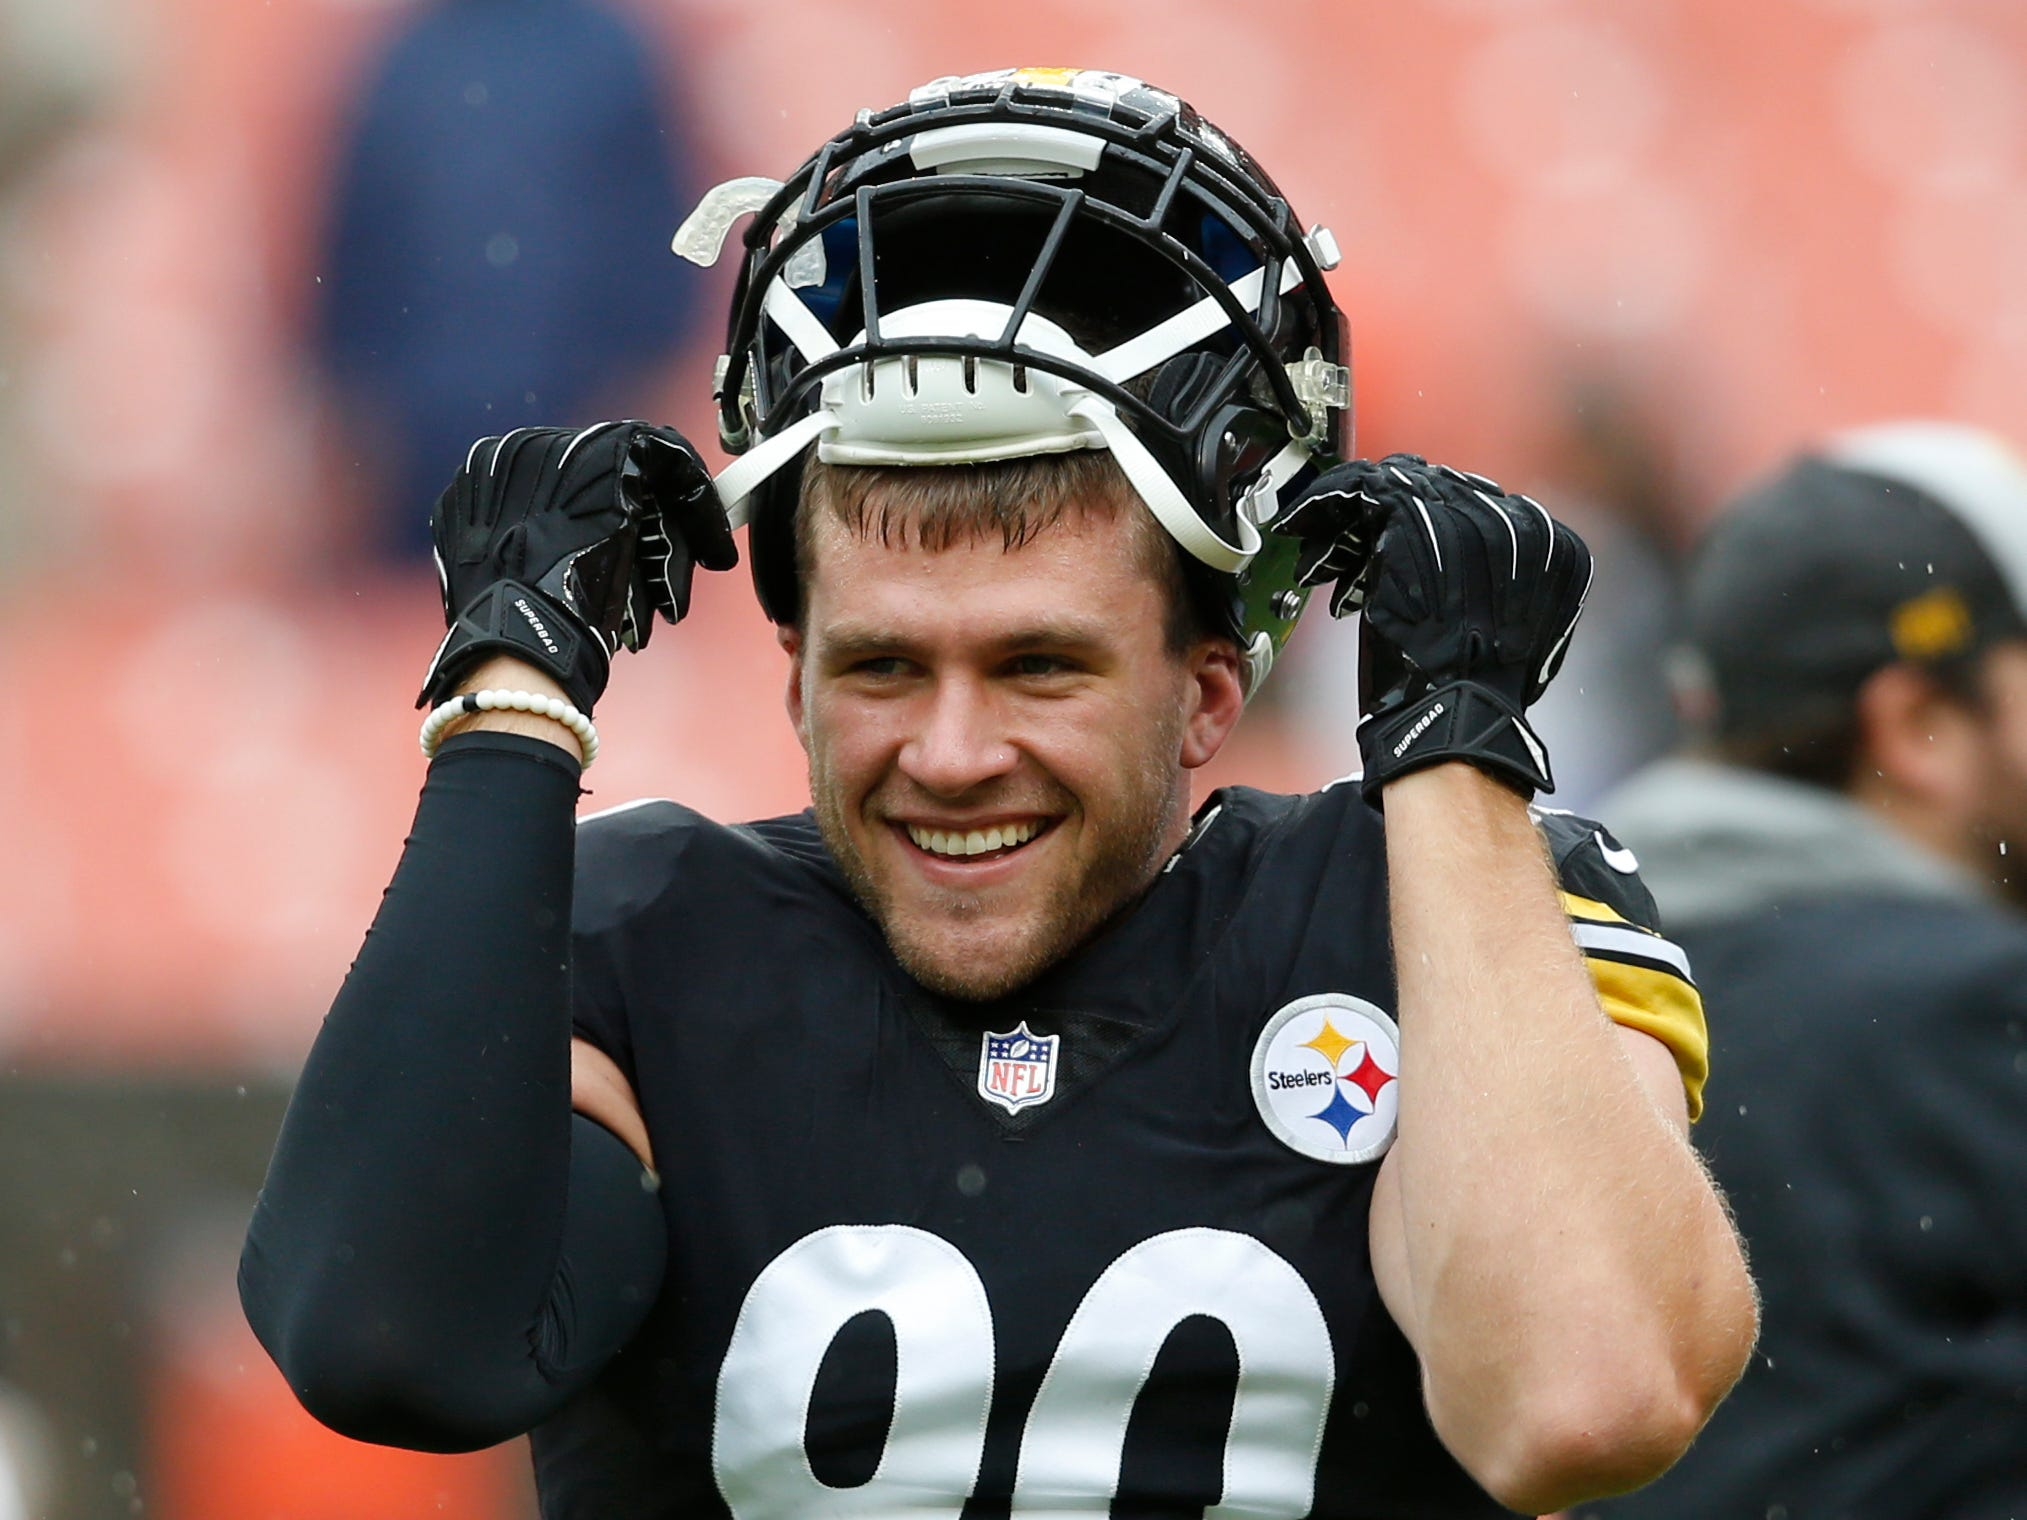 Pittsburgh Steelers linebacker T.J. Watt smiles during warm ups before a Week 1 game against the Cleveland Browns, Sunday, Sept. 9, 2018, in Cleveland. The two teams tied, 21-21.